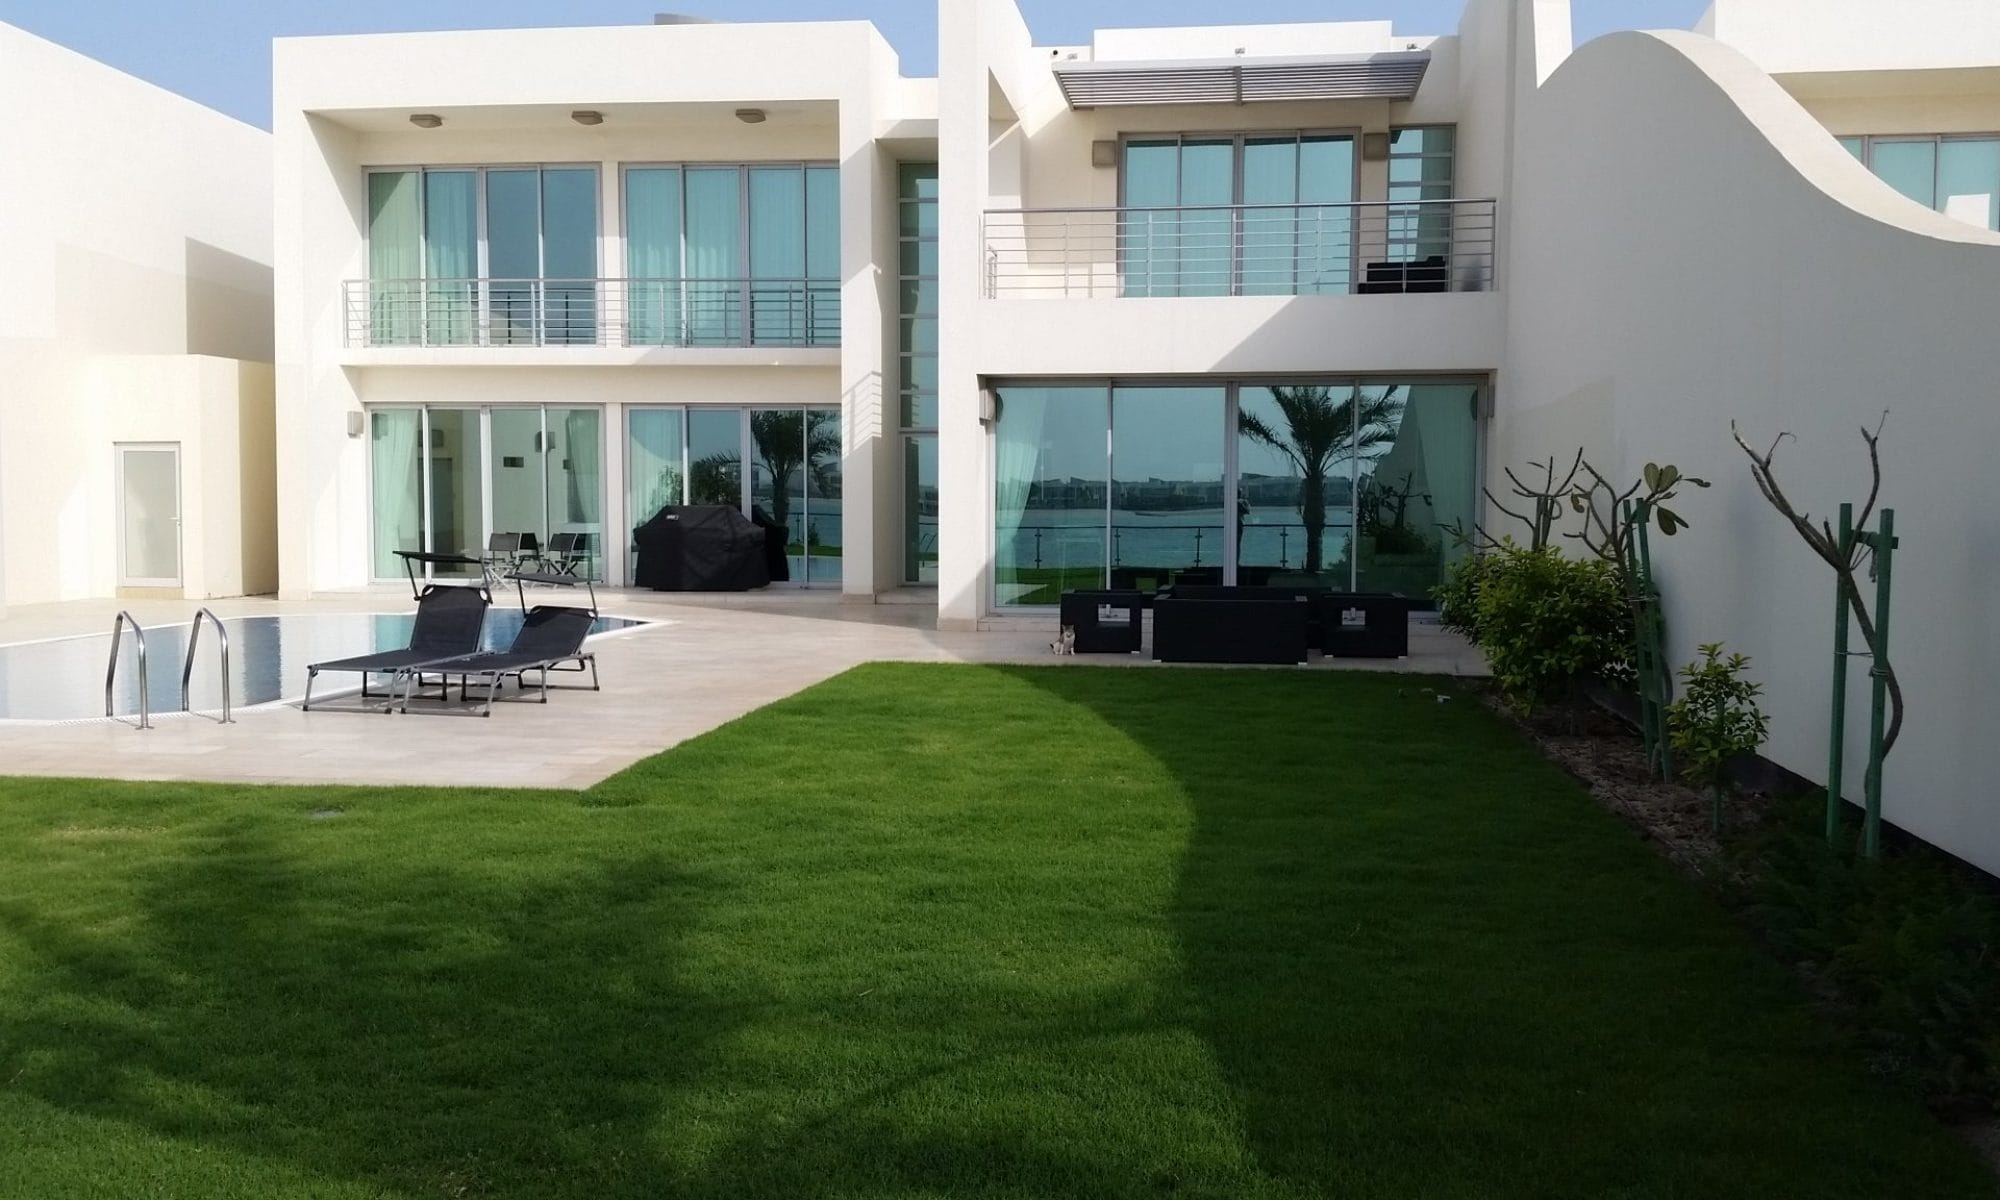 Durrat al Bahrain - Beach-Villa for Sale: 329,000 BD - negotiable